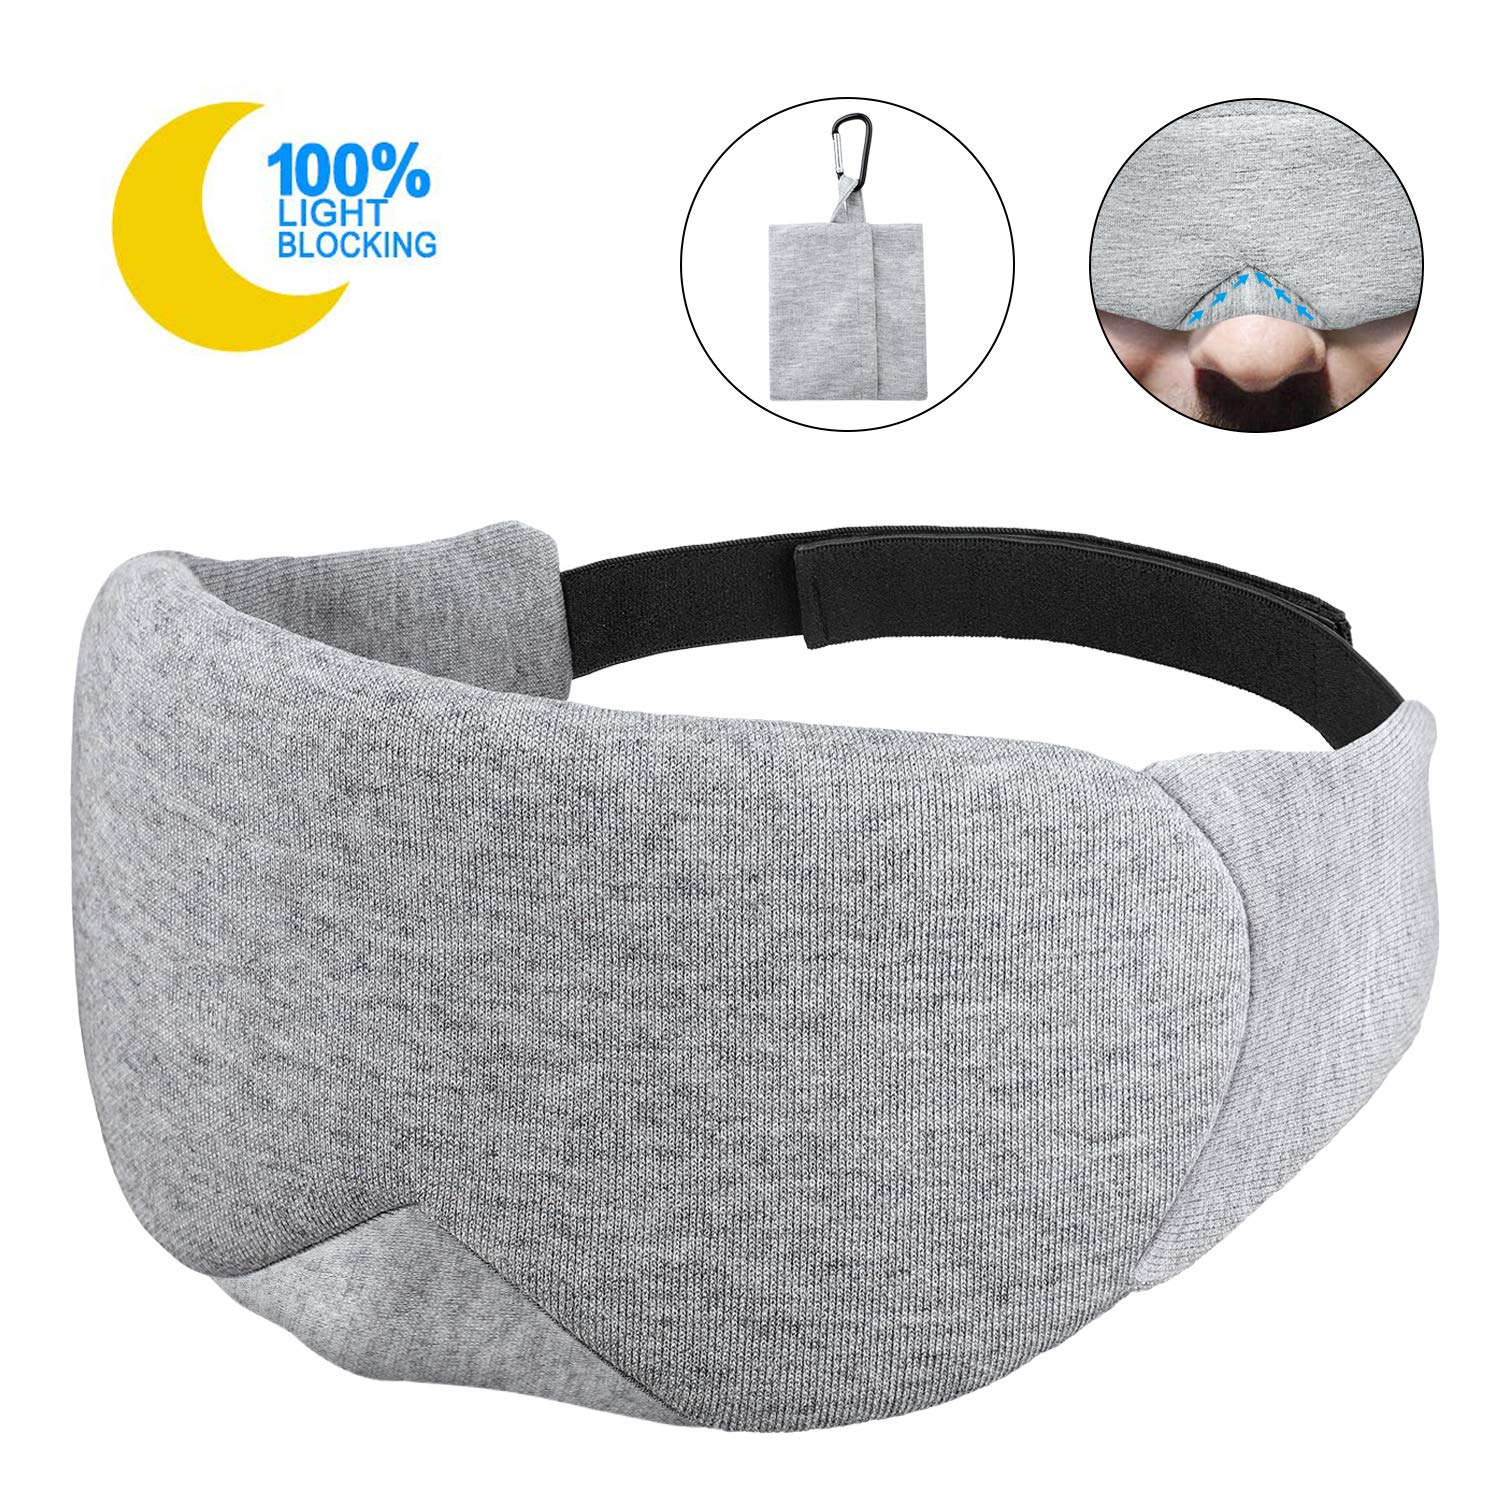 Sleep Mask Fast Sleeping Eye Mask Eyeshade Cover Shade Patch Women Men Soft Portable Blindfold Travel Slaapmasker Eye Care Tool